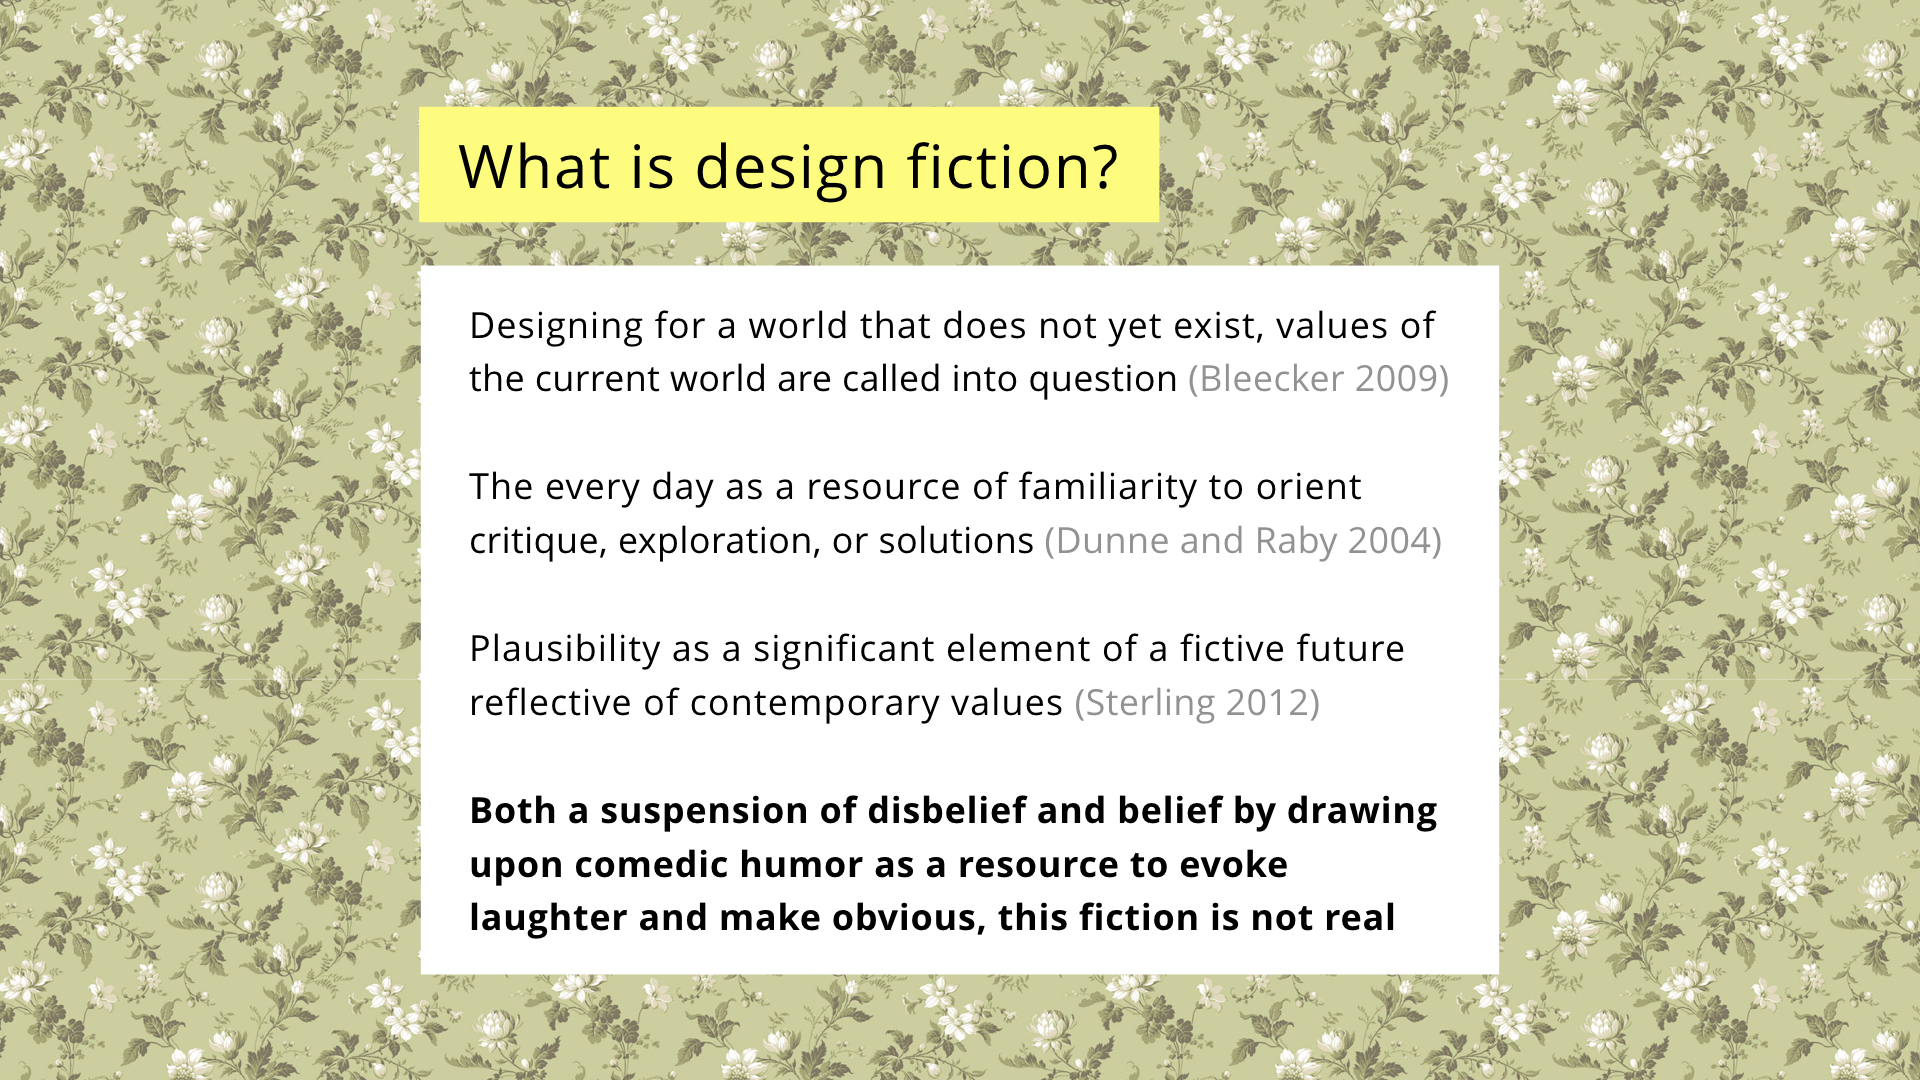 NordiCHI future scenarios presentation: What is design fiction?